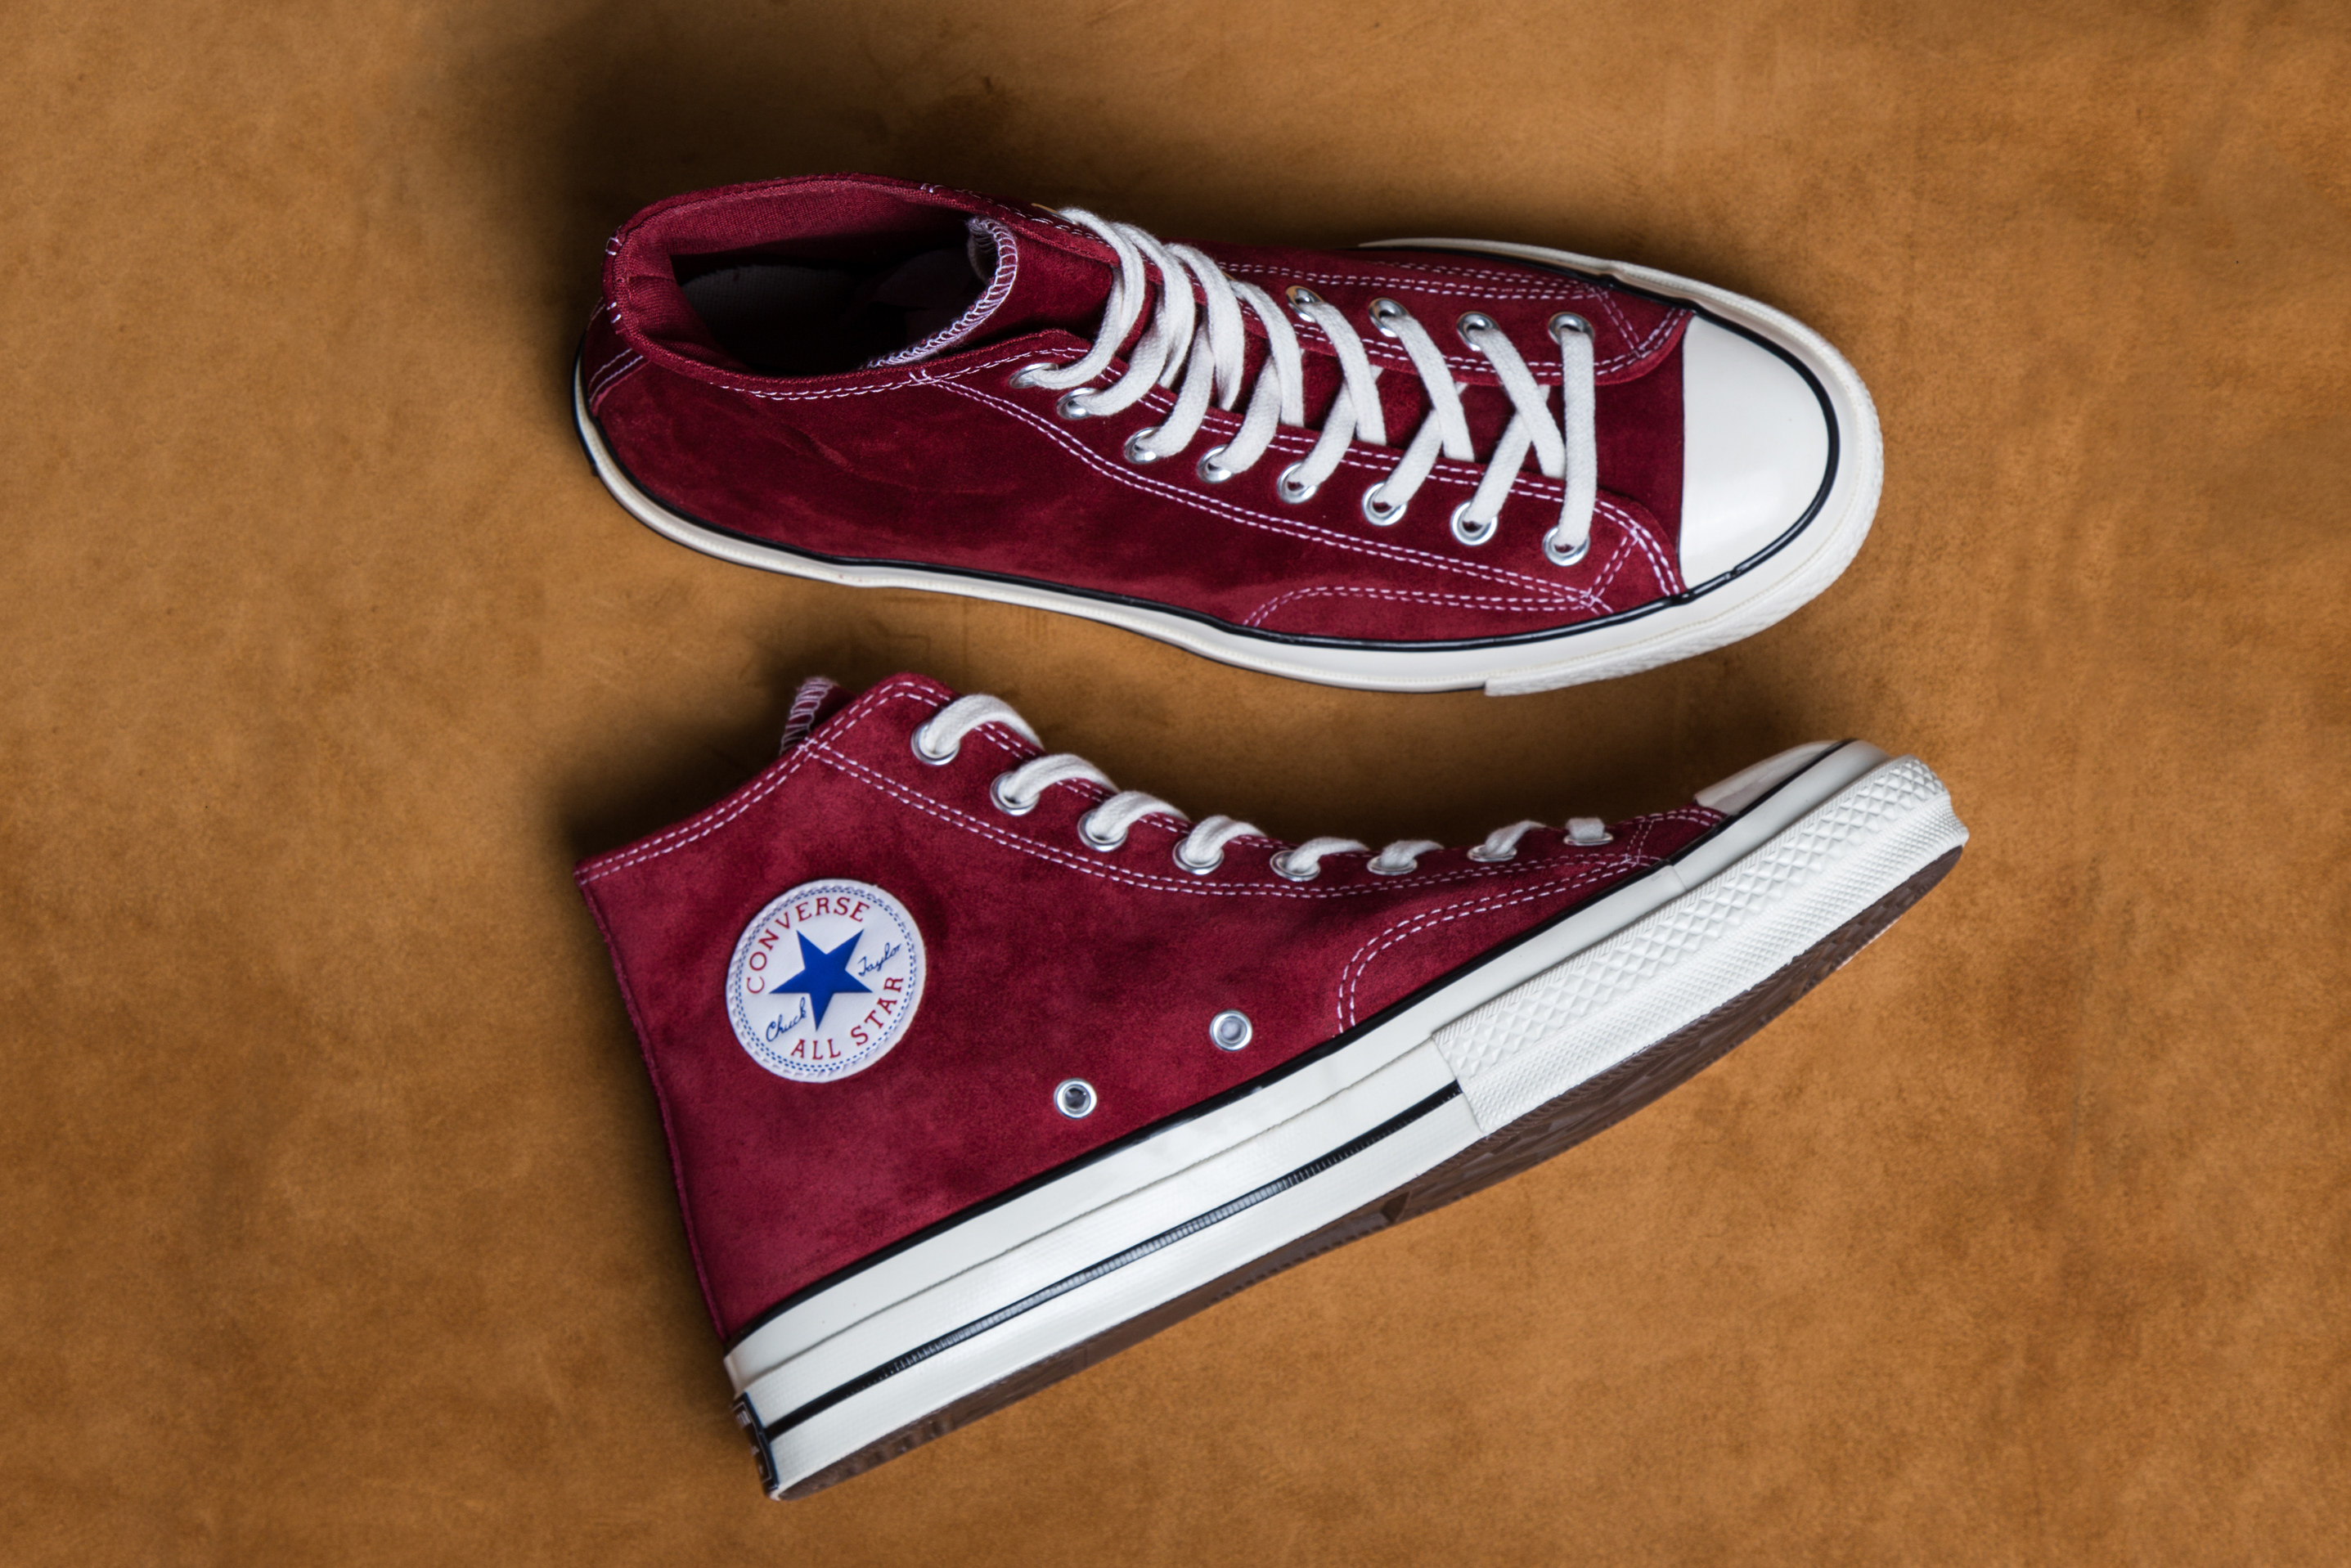 86fd0294a3eab 2015-12-22-1450816542-5680689-conversersuede01.jpg. Converse Chuck Taylor  All-Star Suede